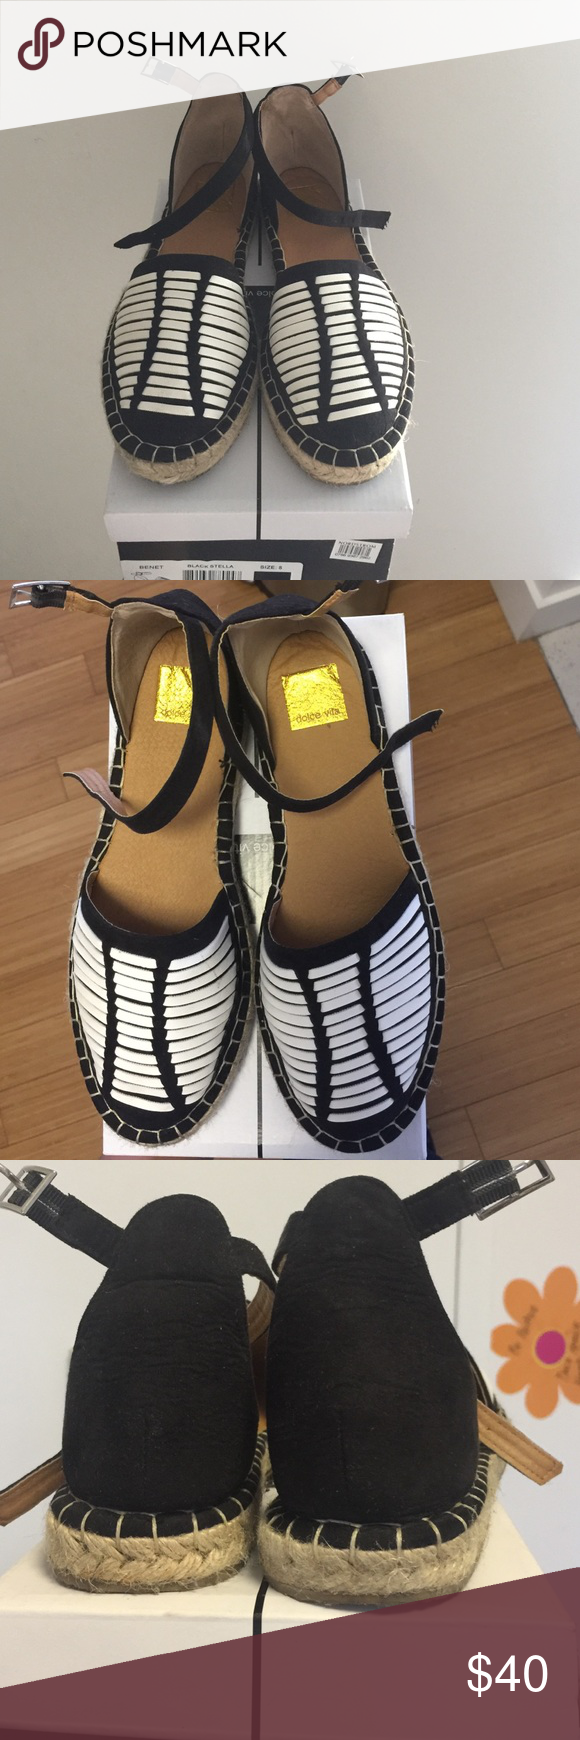 DV by Dolce Vita Kids Benet Espadrilles Sandal Black and White Leather and Suede Espadrilles with Adjustable Straps DV by Dolce Vita Shoes Sandals & Flip Flops